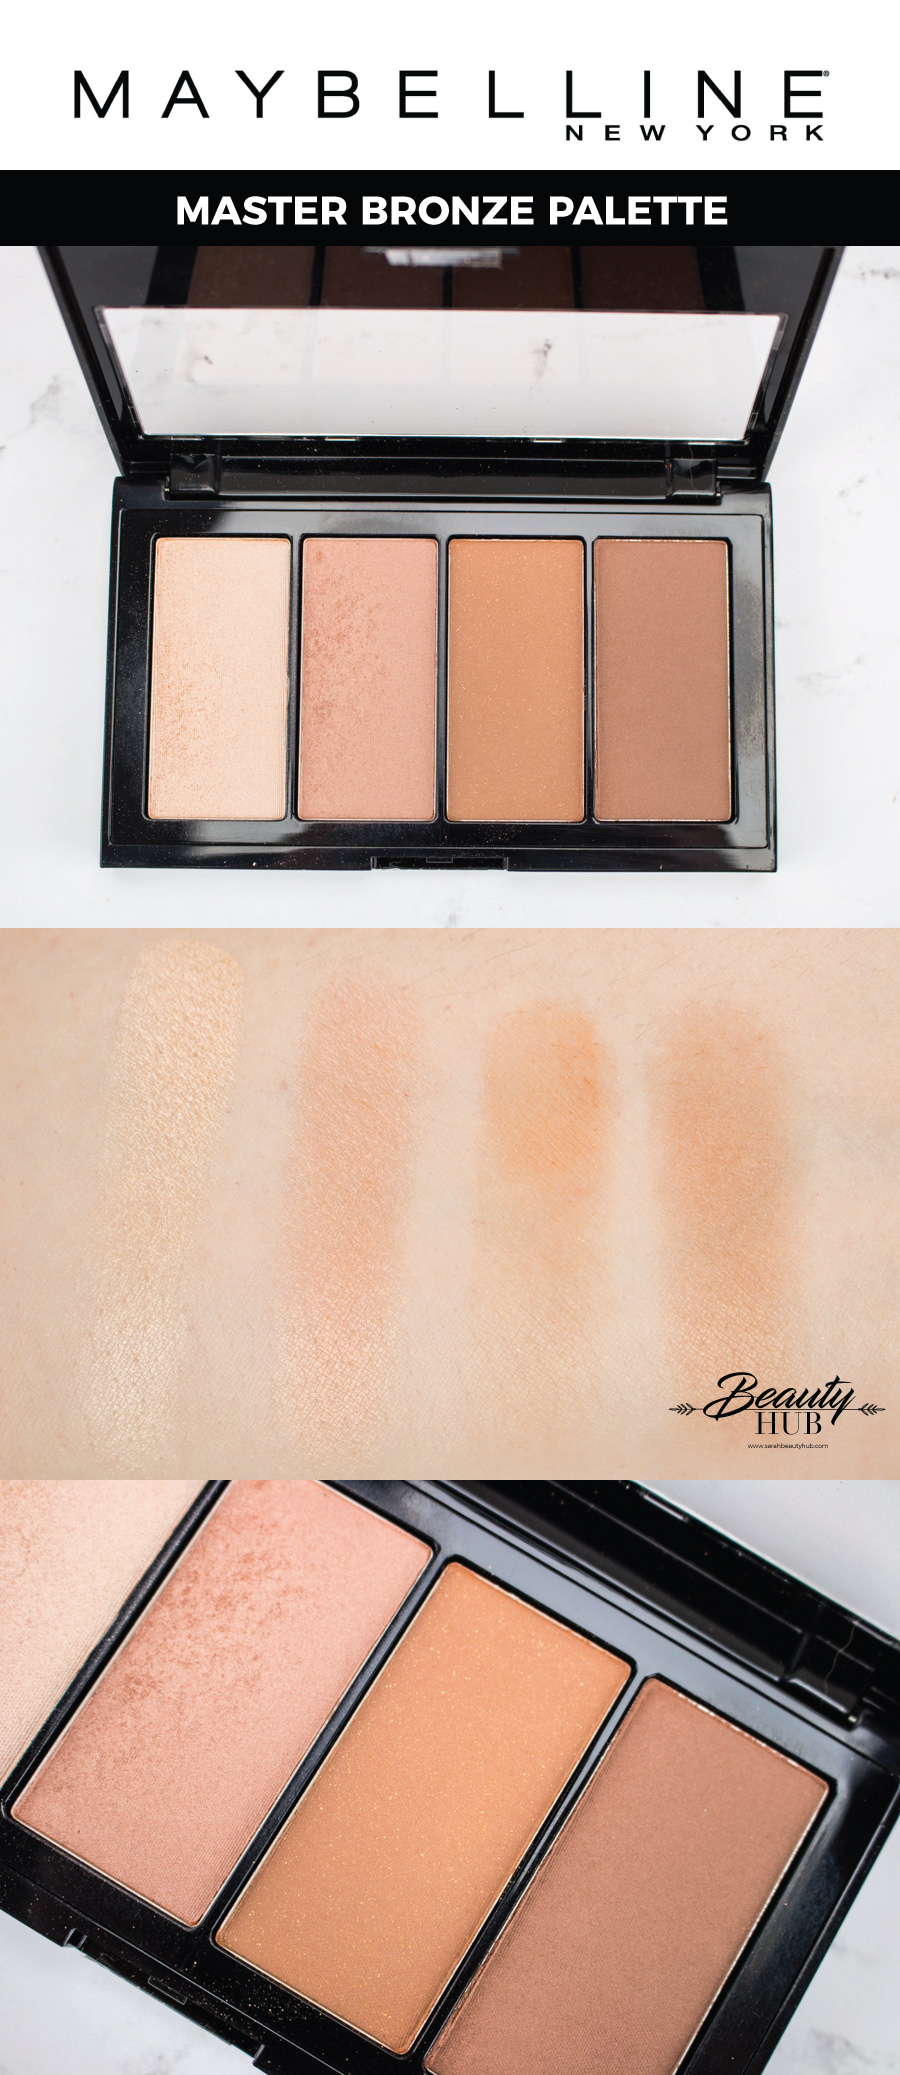 Maybelline Master Bronze Palette Review & Swatches